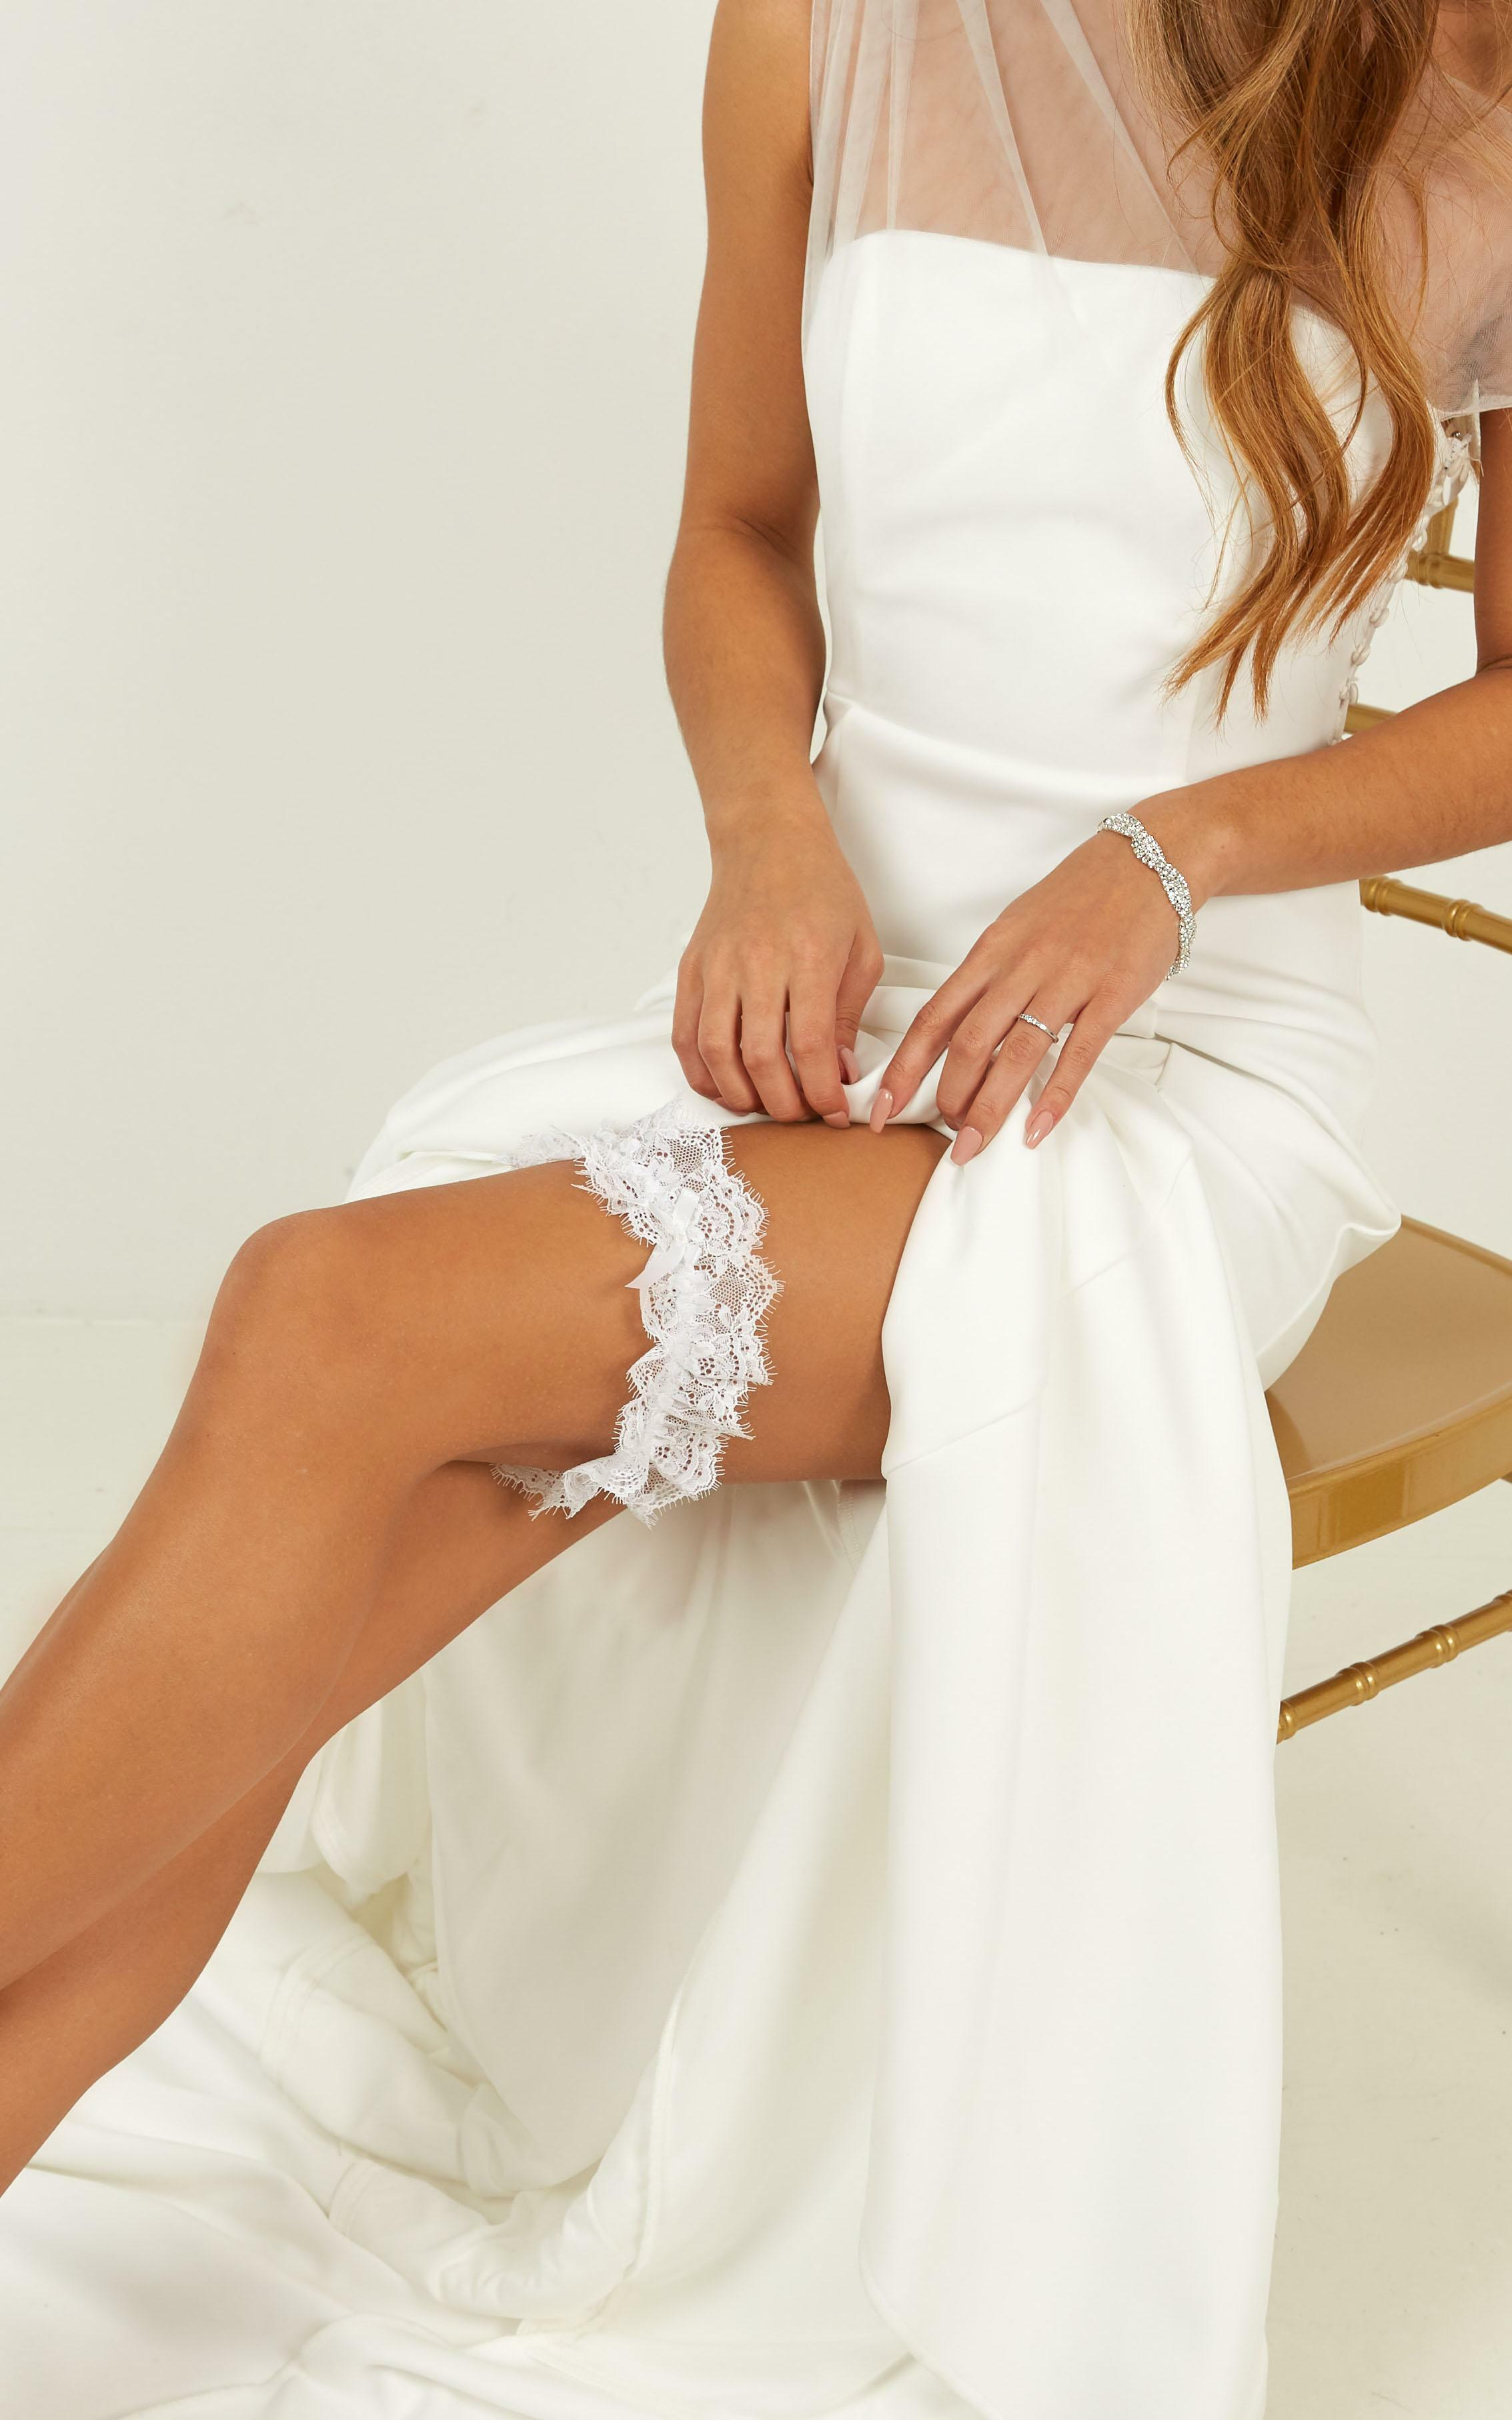 The Moment For Me And You Eyelash Lace Garter In White, , hi-res image number null